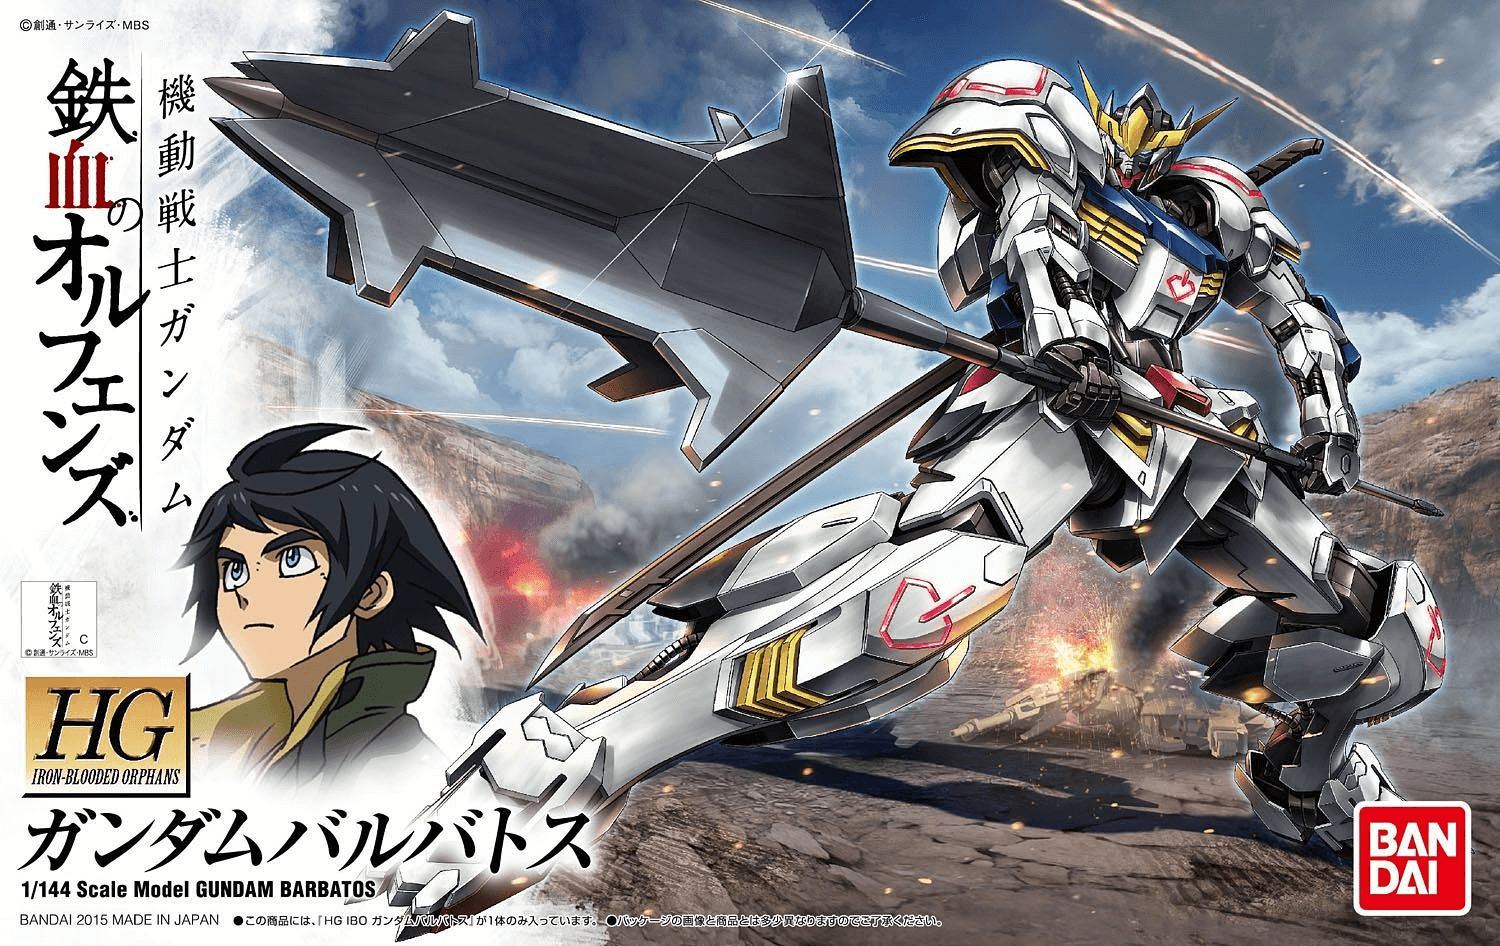 Bandai Model # BAN5057977, Iron Blooded Orphans #01 HG Gundam Barbatos 1/144 cover art